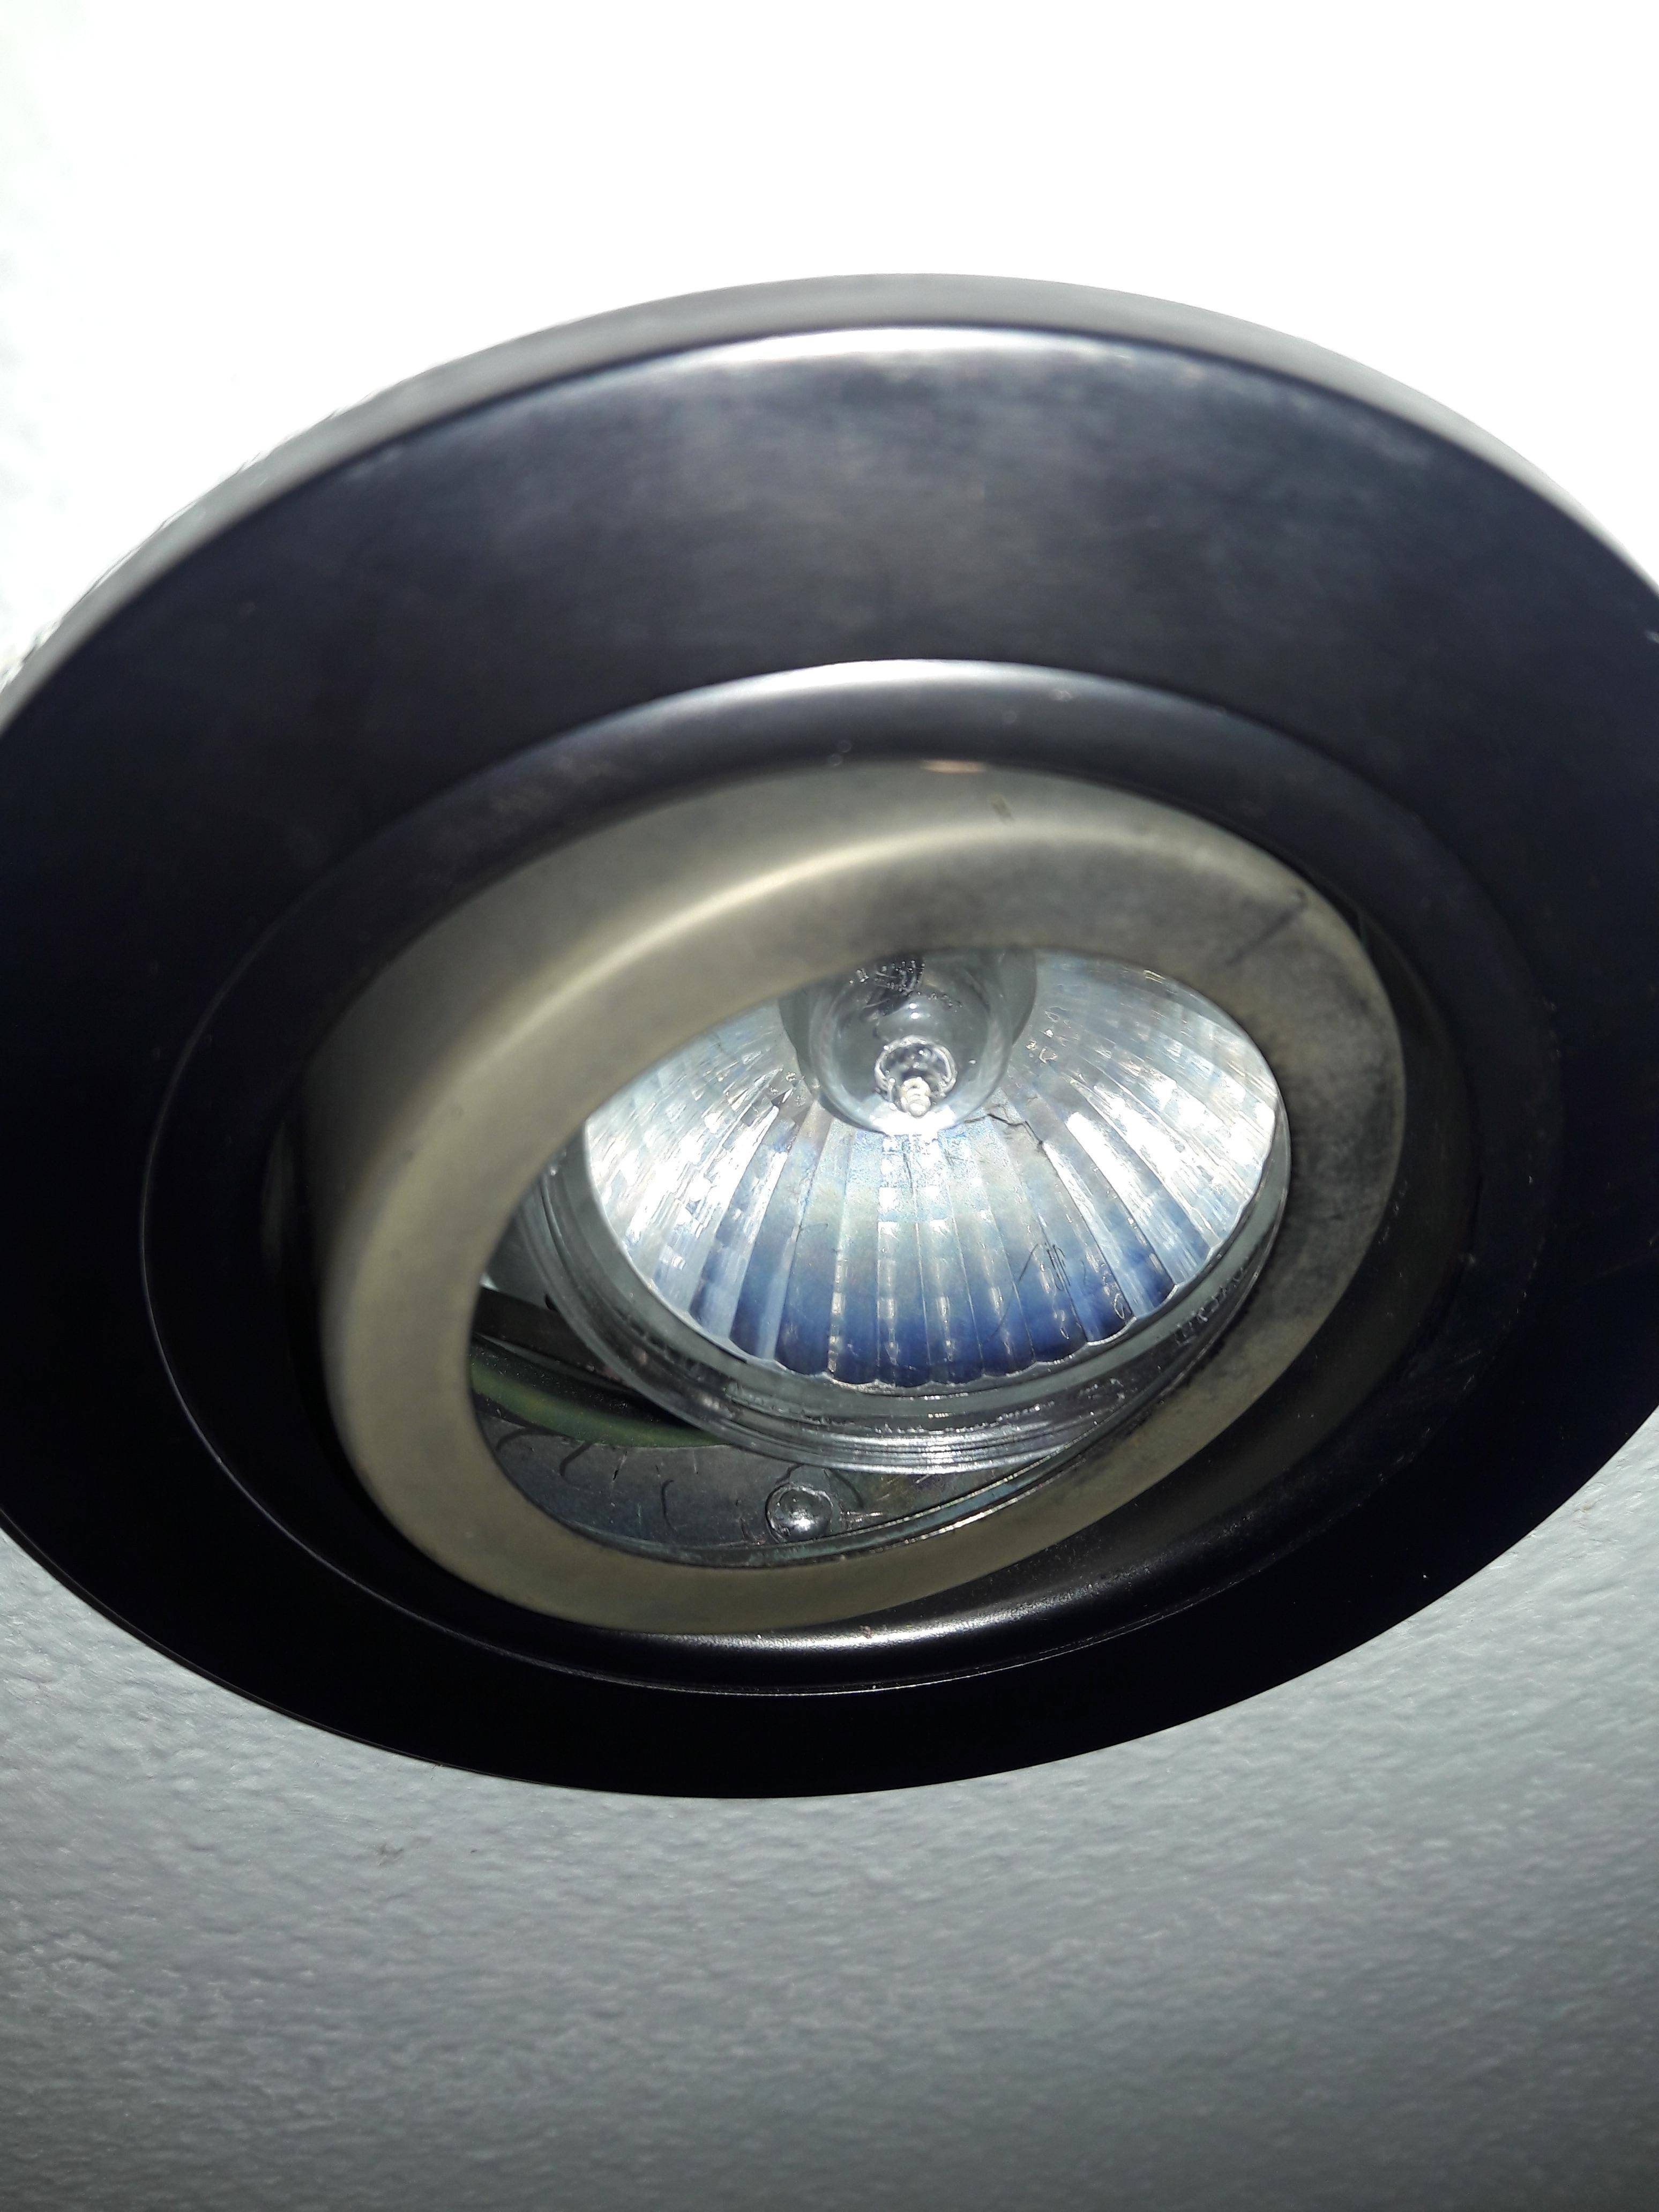 How to change recessed lighting with GU10 light bulb